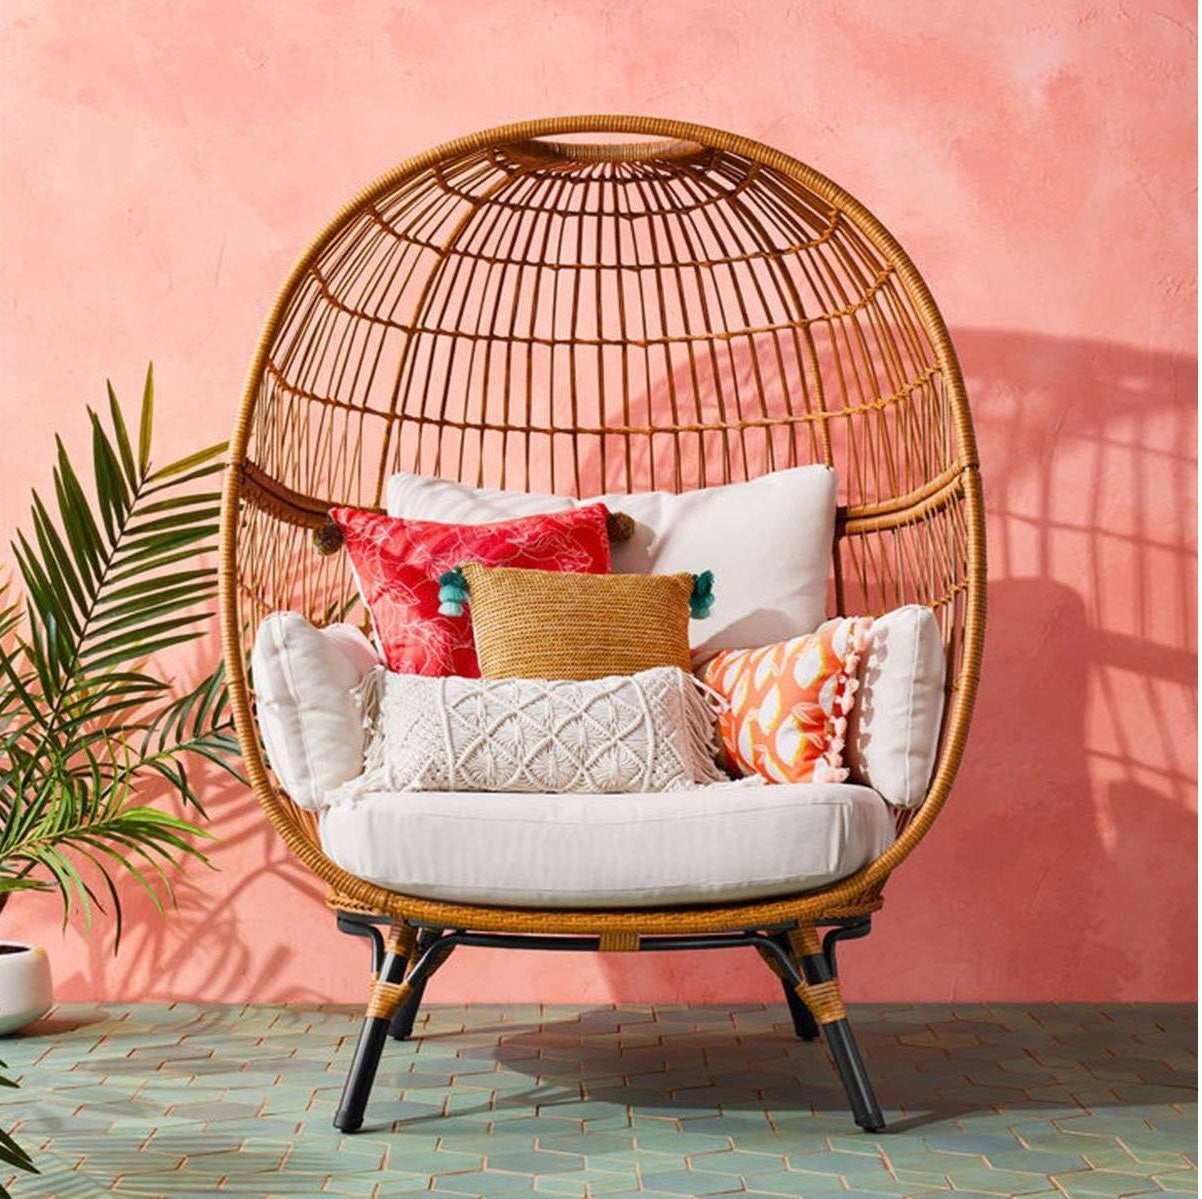 big wicker egg chair with white cushions and colorful throw pillows